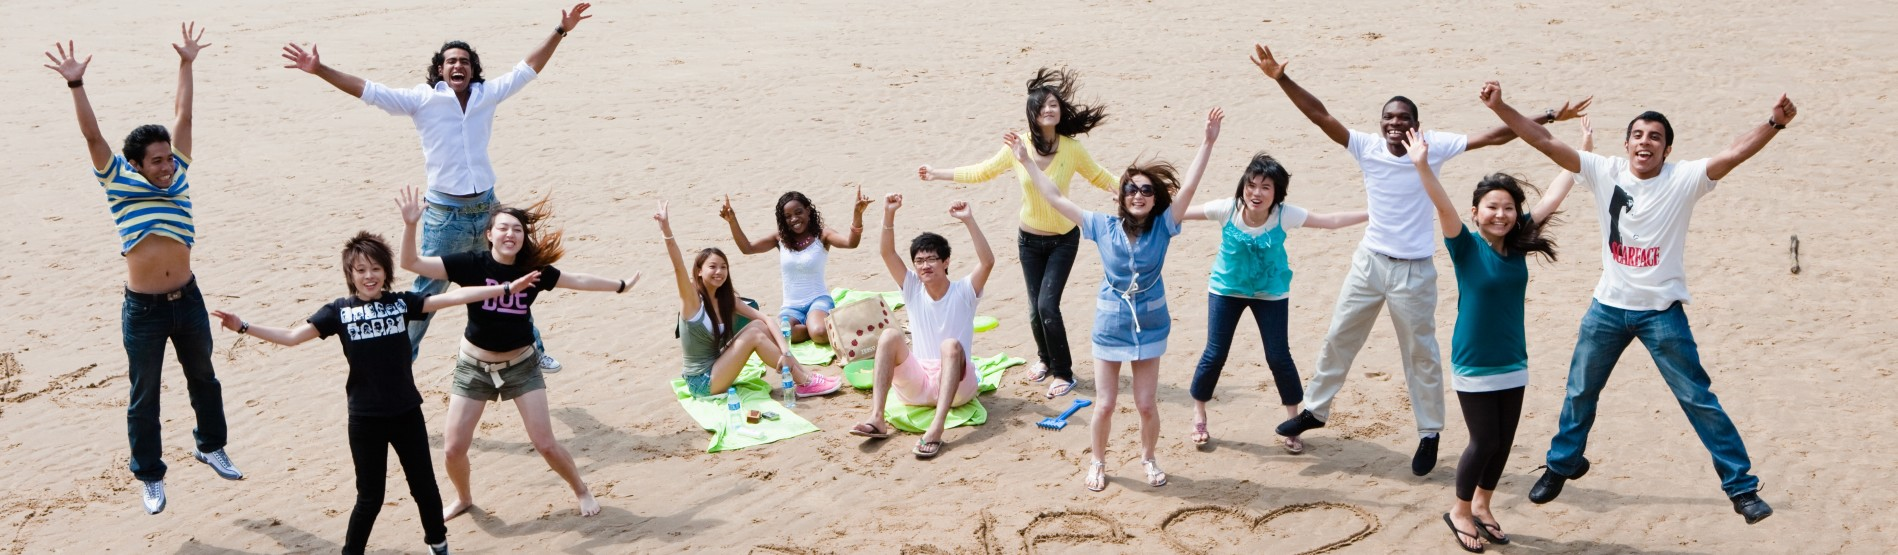 International students on the beach